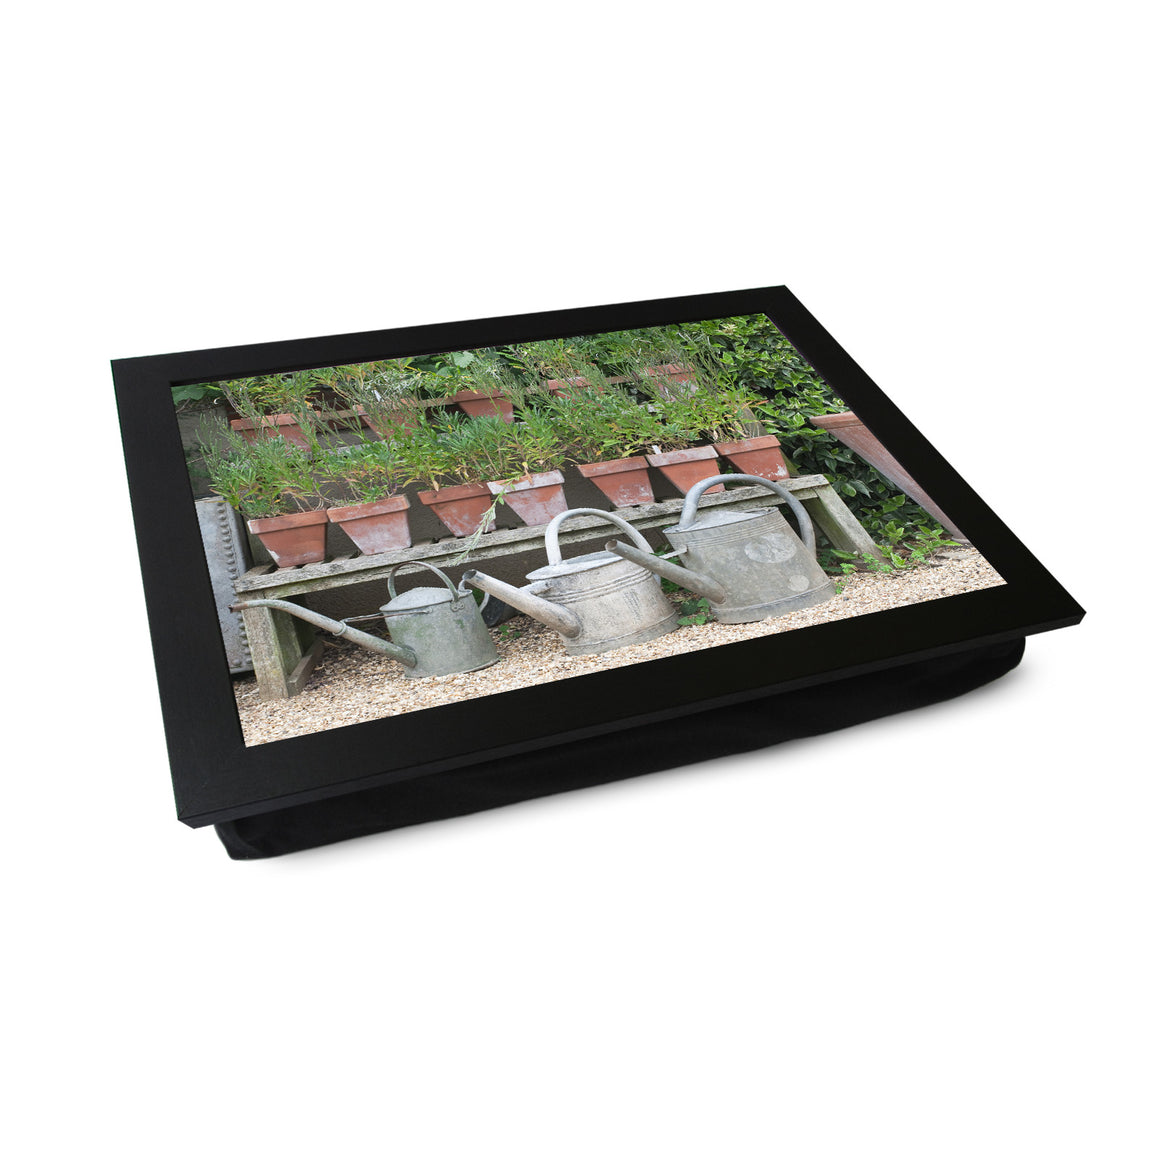 Plant Pots & Watering Cans Lap Tray - L0204